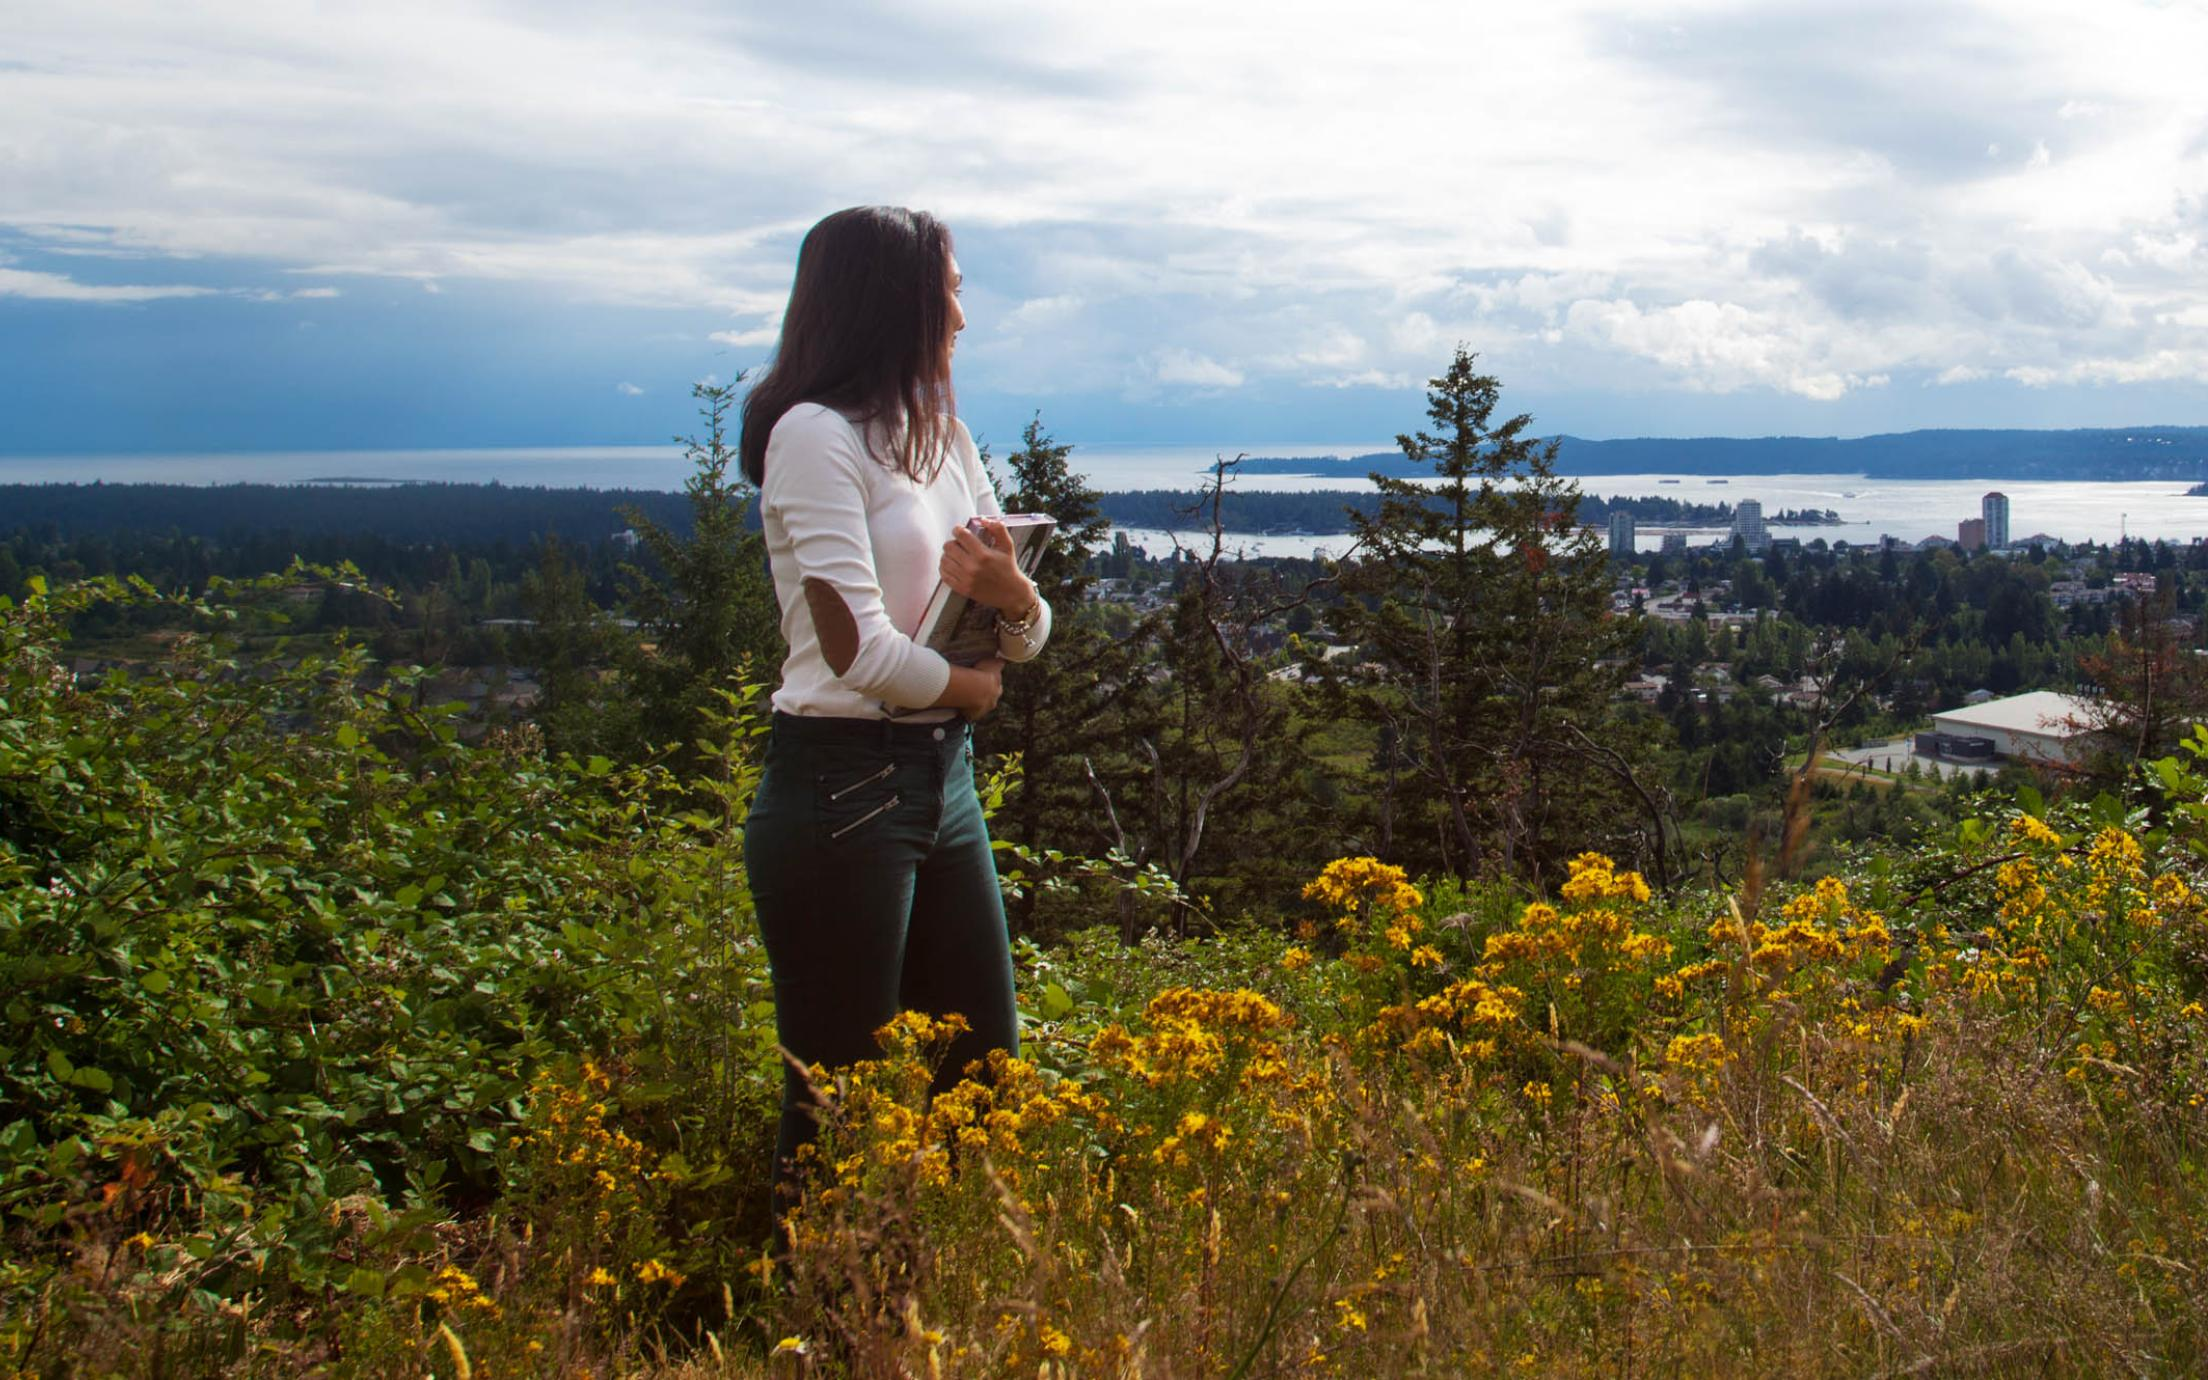 A Student of the courses in humanities study program is enjoying Vancouver Island's beautiful landscape